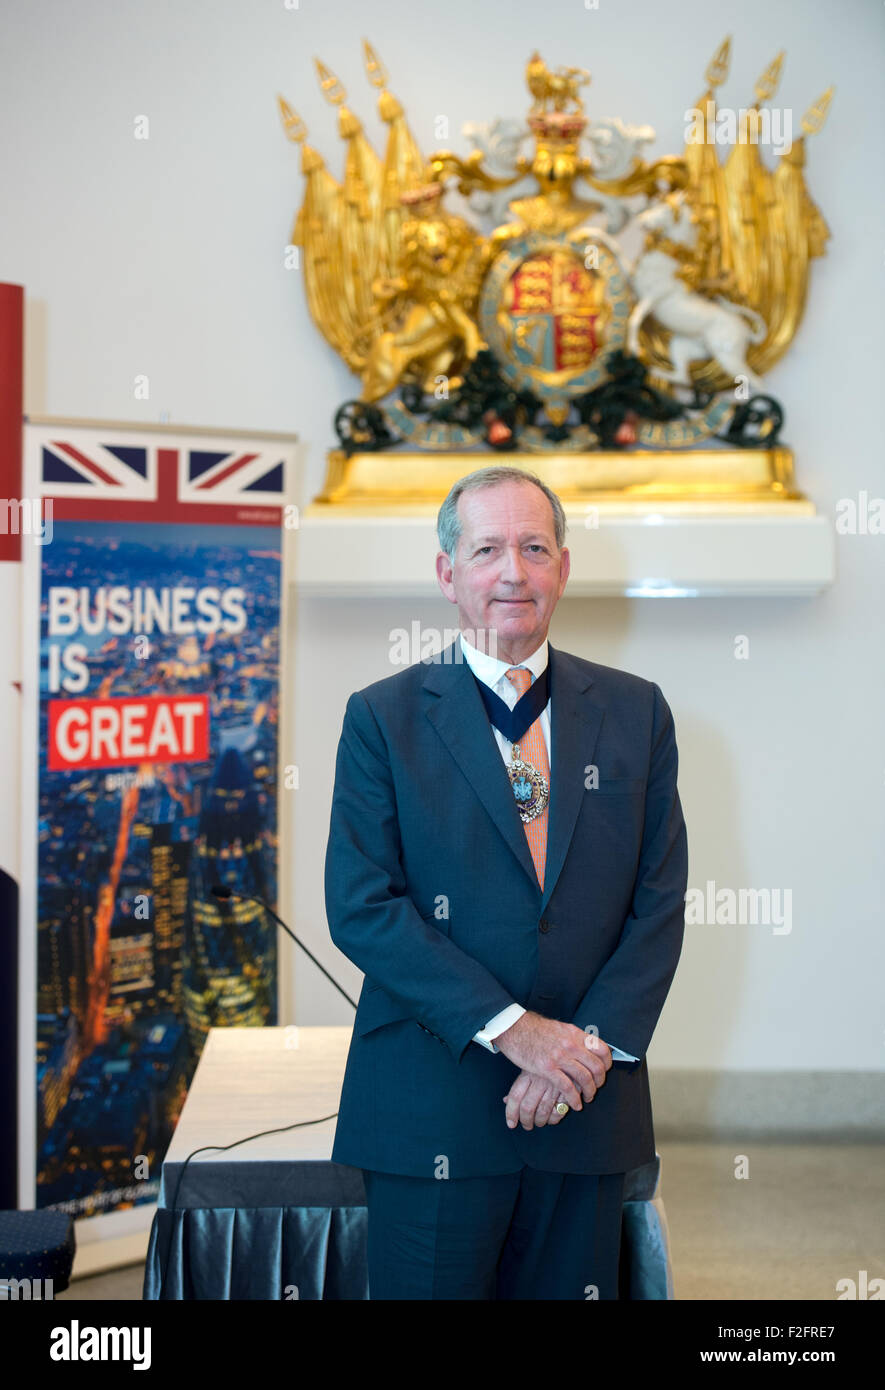 Hong Kong. 18th September, 2015. Alderman Alan Yarrow, The Lord Mayor of London, poses in the Foyer of the British Stock Photo